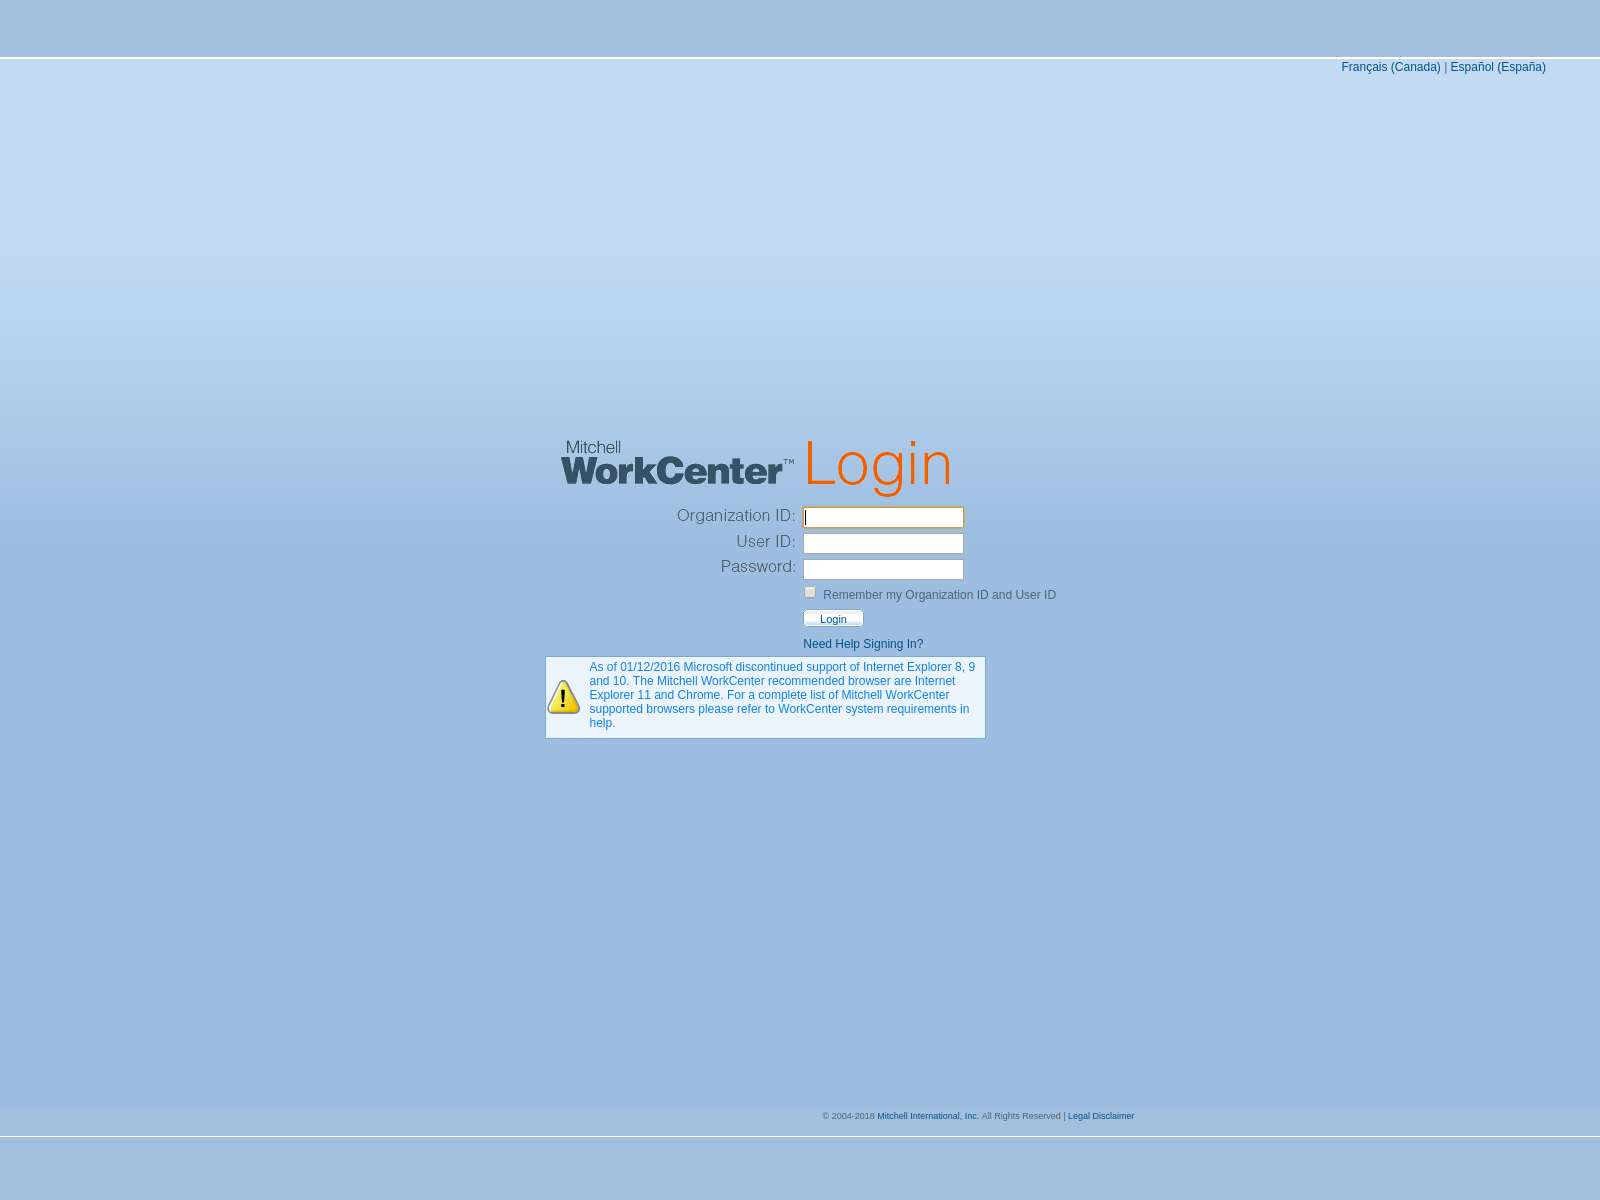 MyMitchell WorkCenter Login